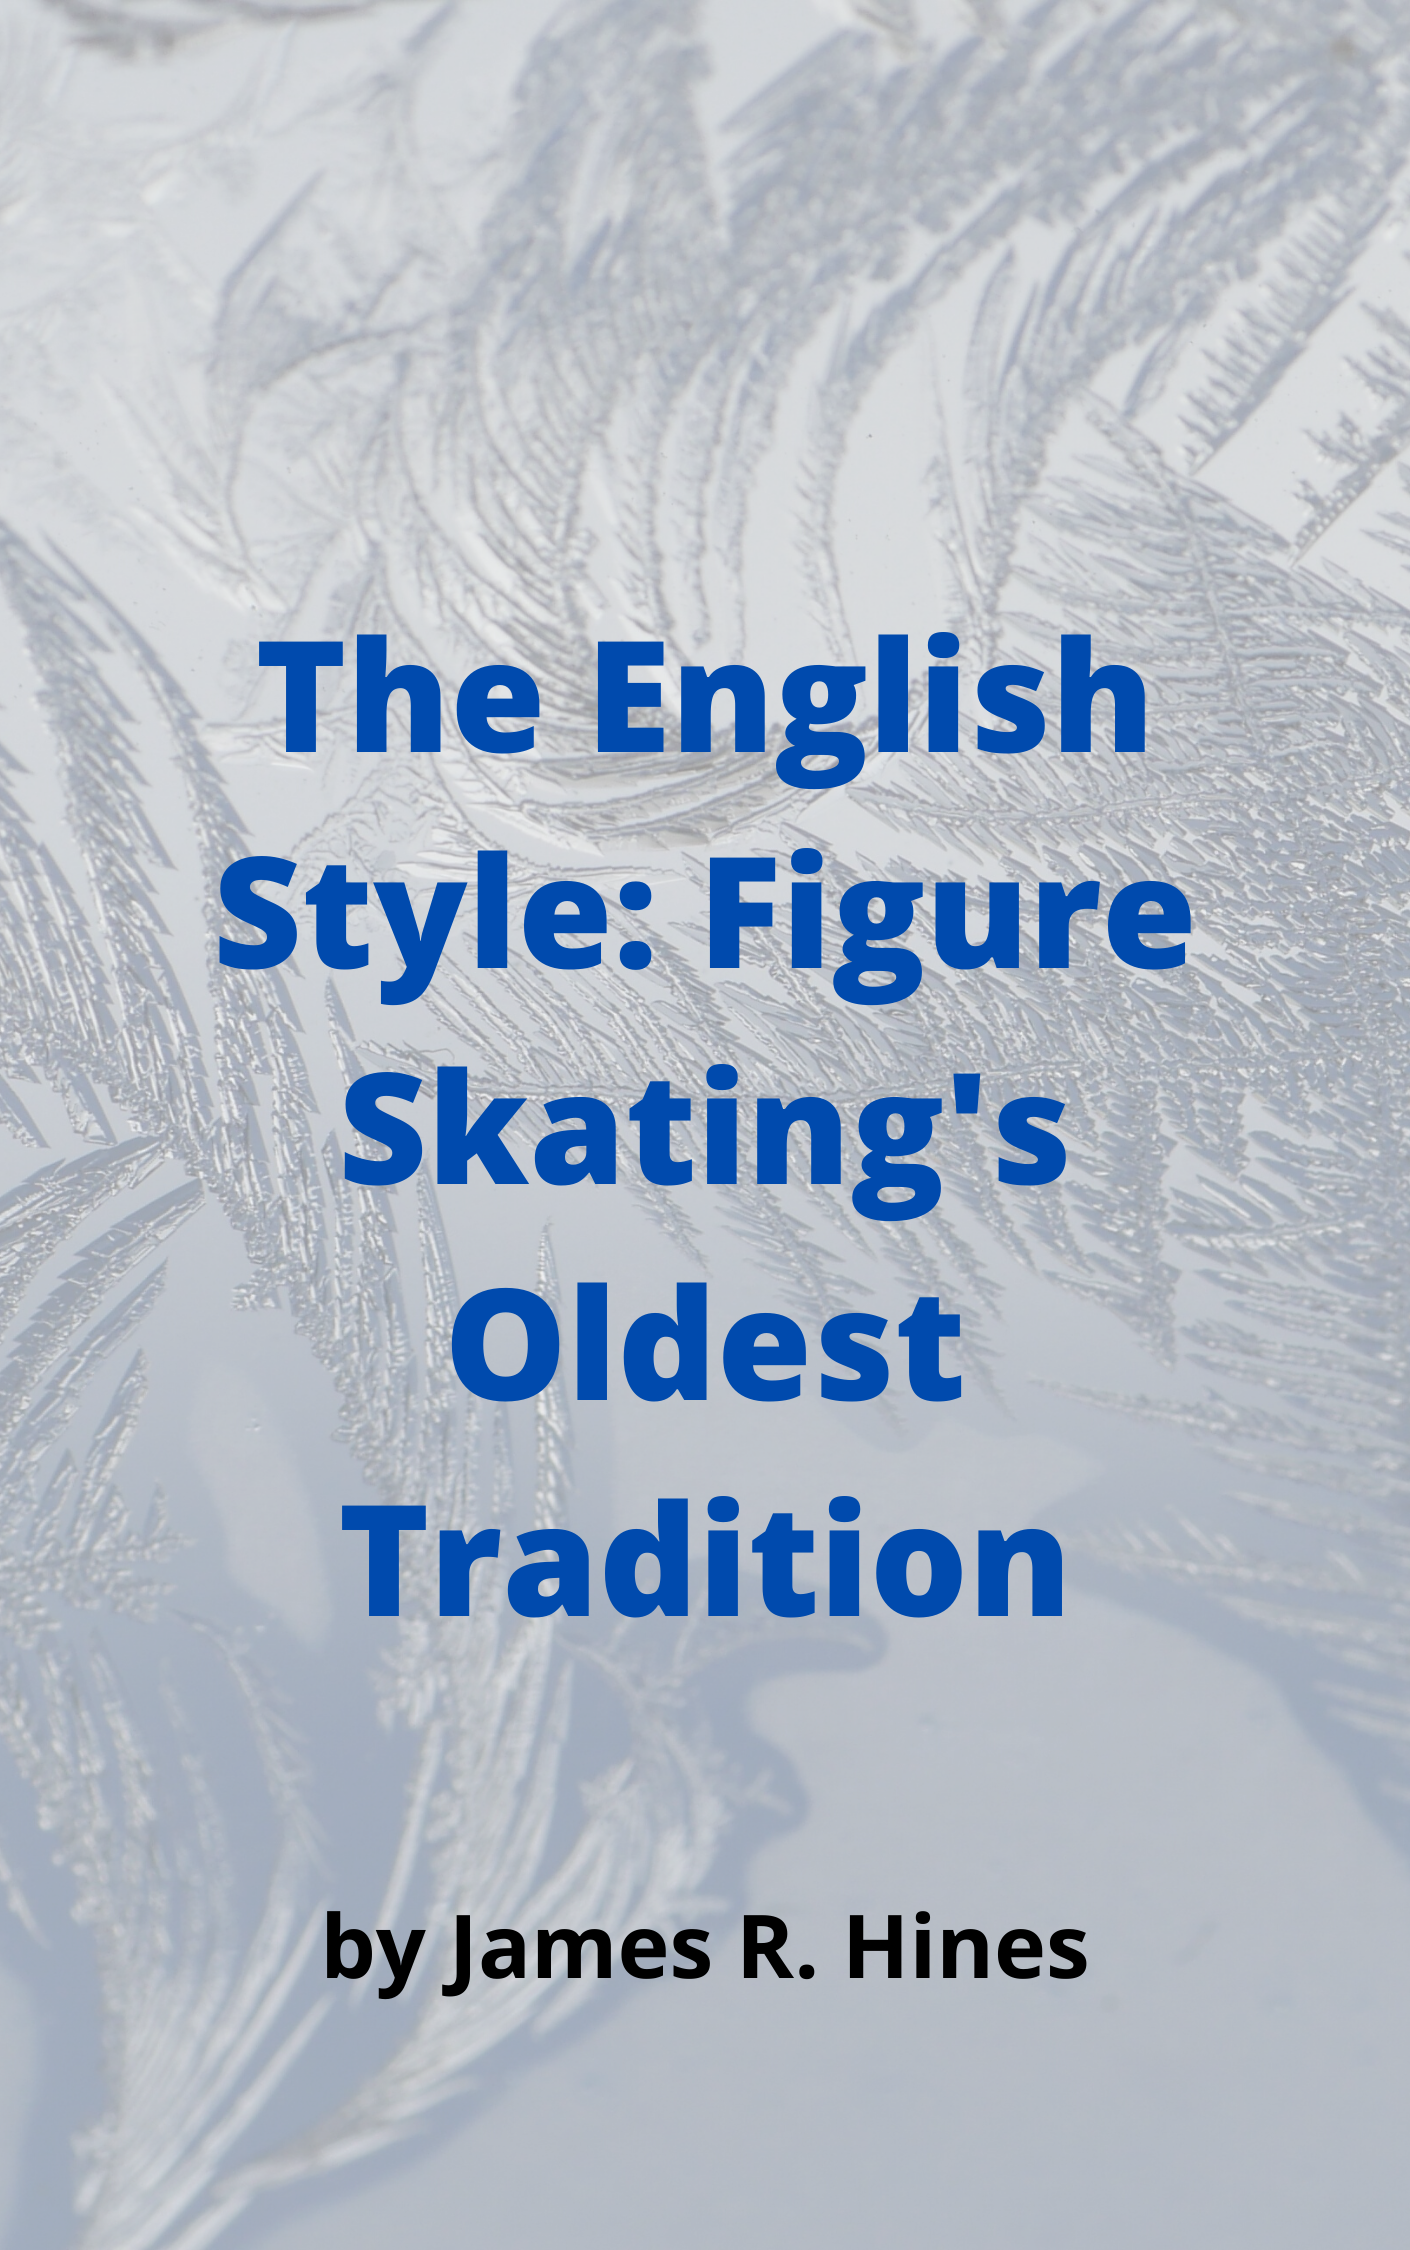 The English Style: Figure Skating's Oldest Tradition